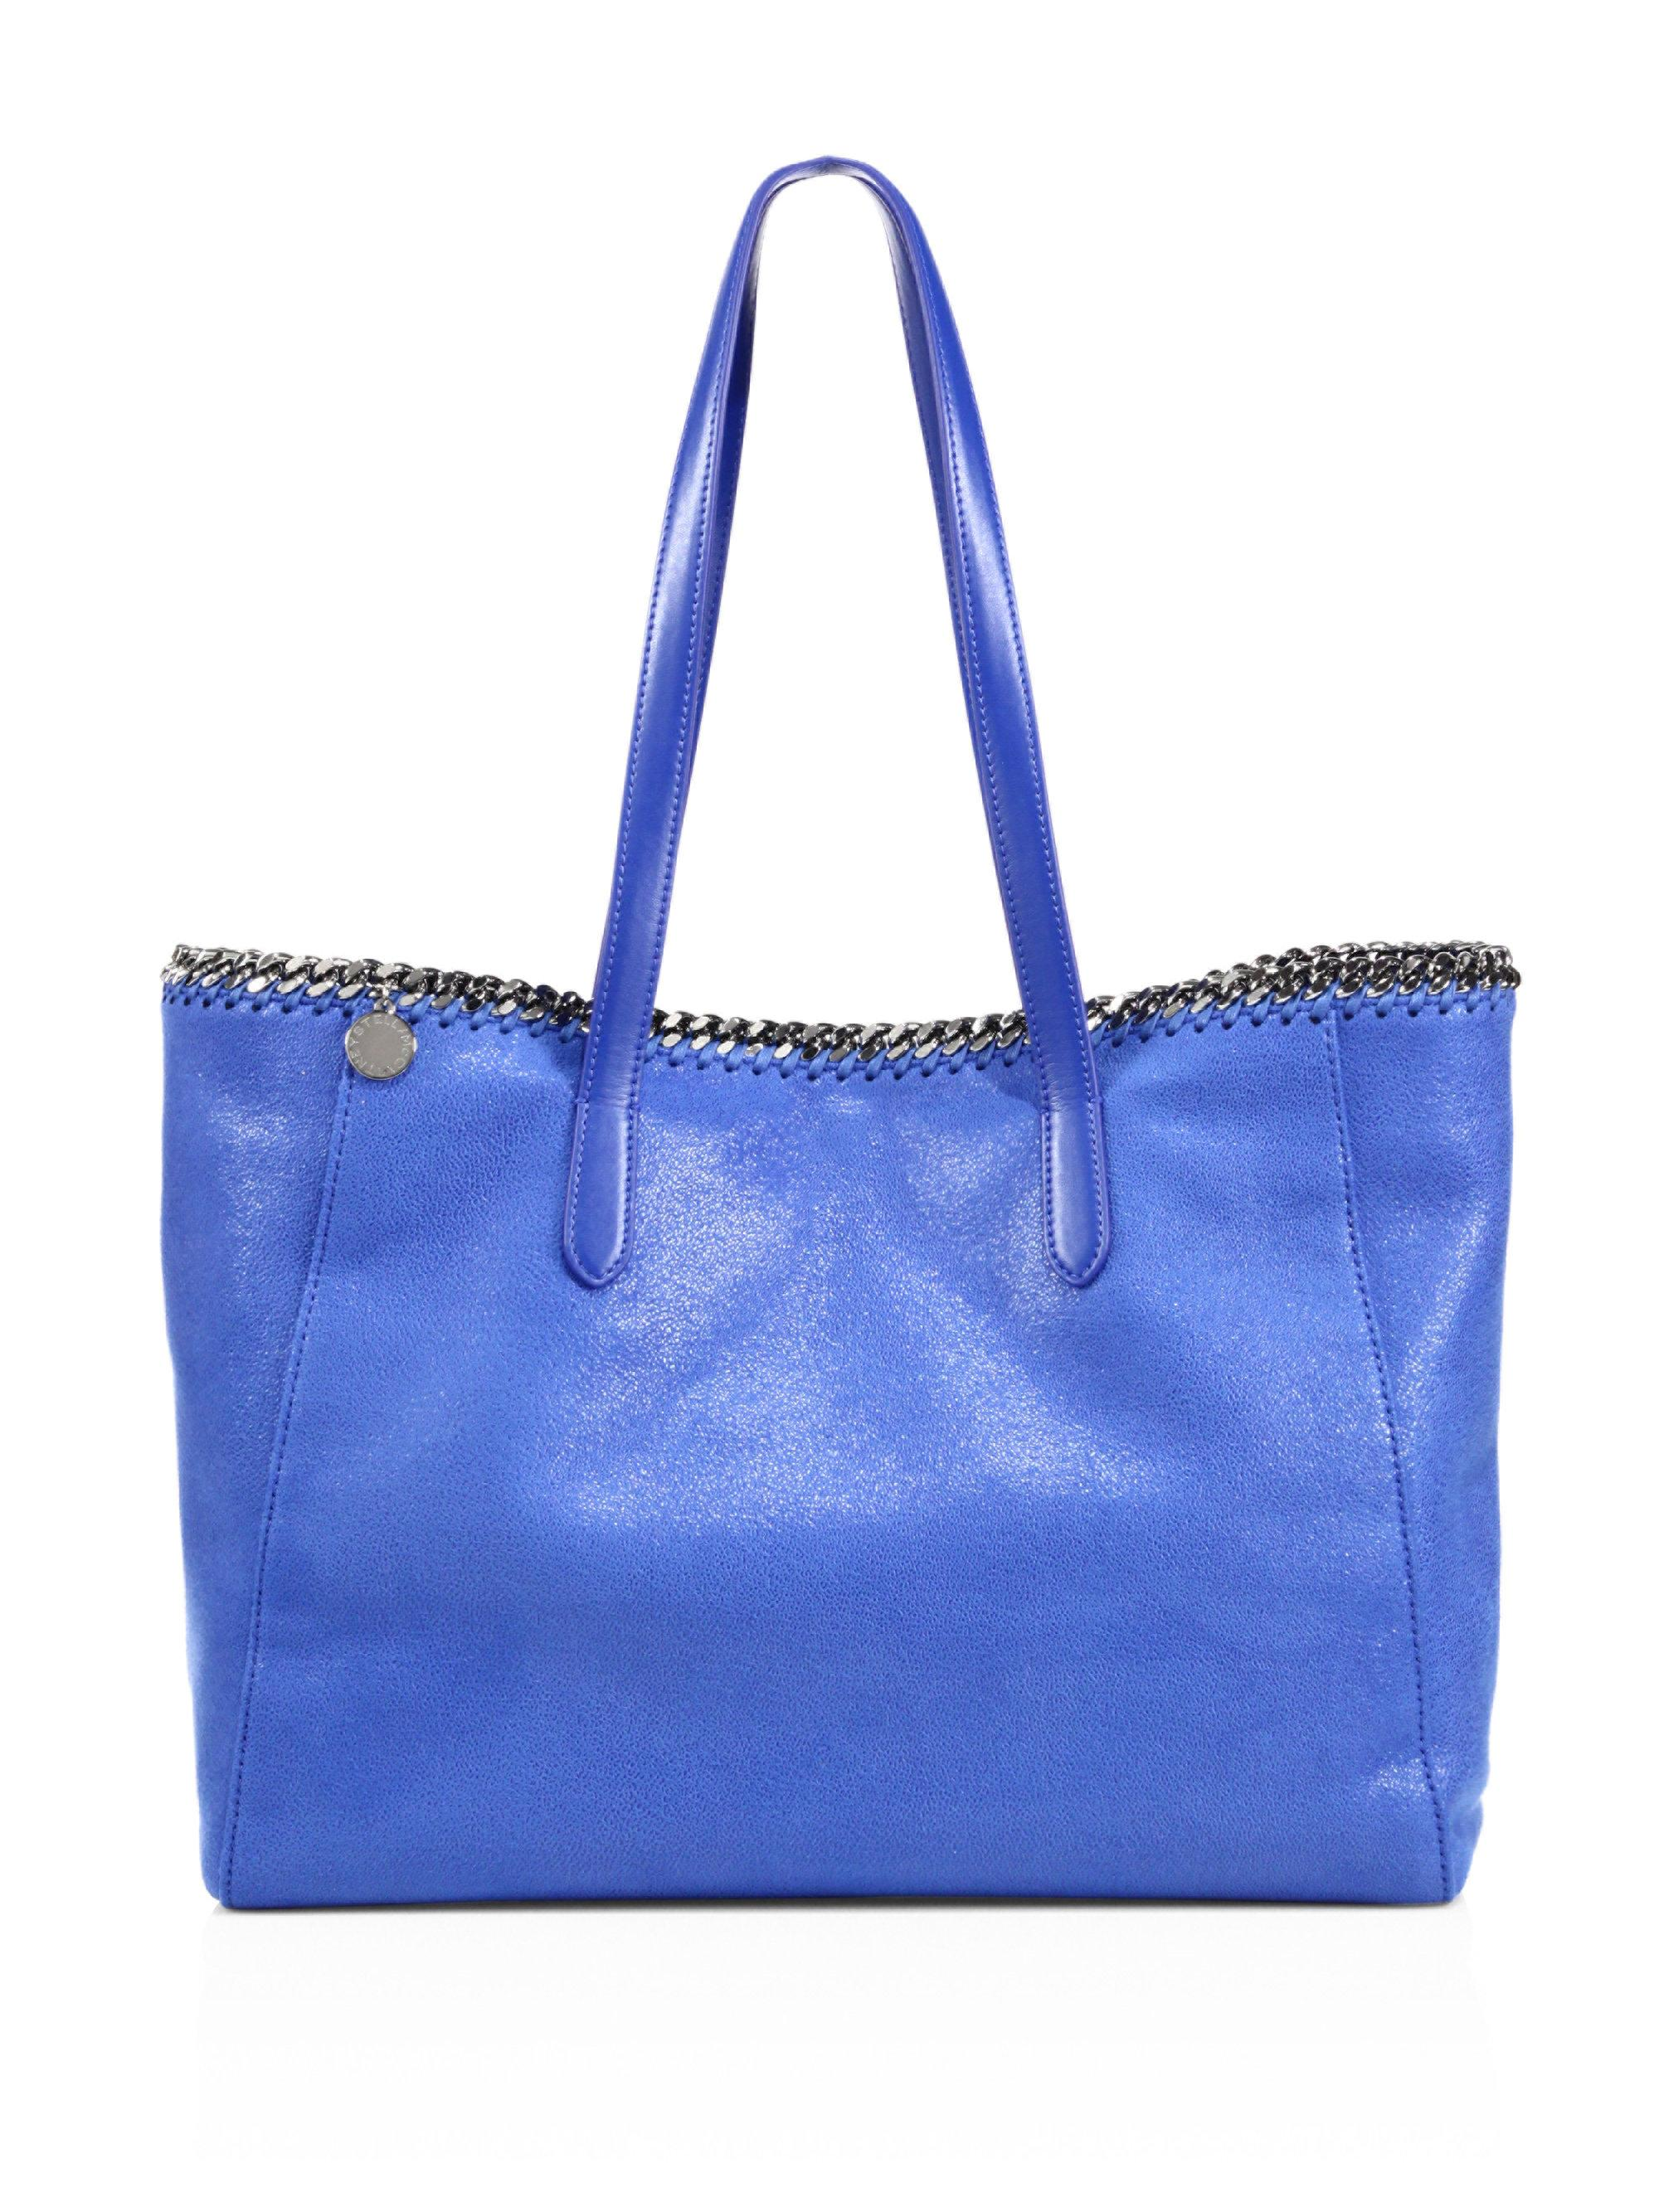 7c58cff11d Stella Mccartney Falabella Small Faux Leather East-west Tote